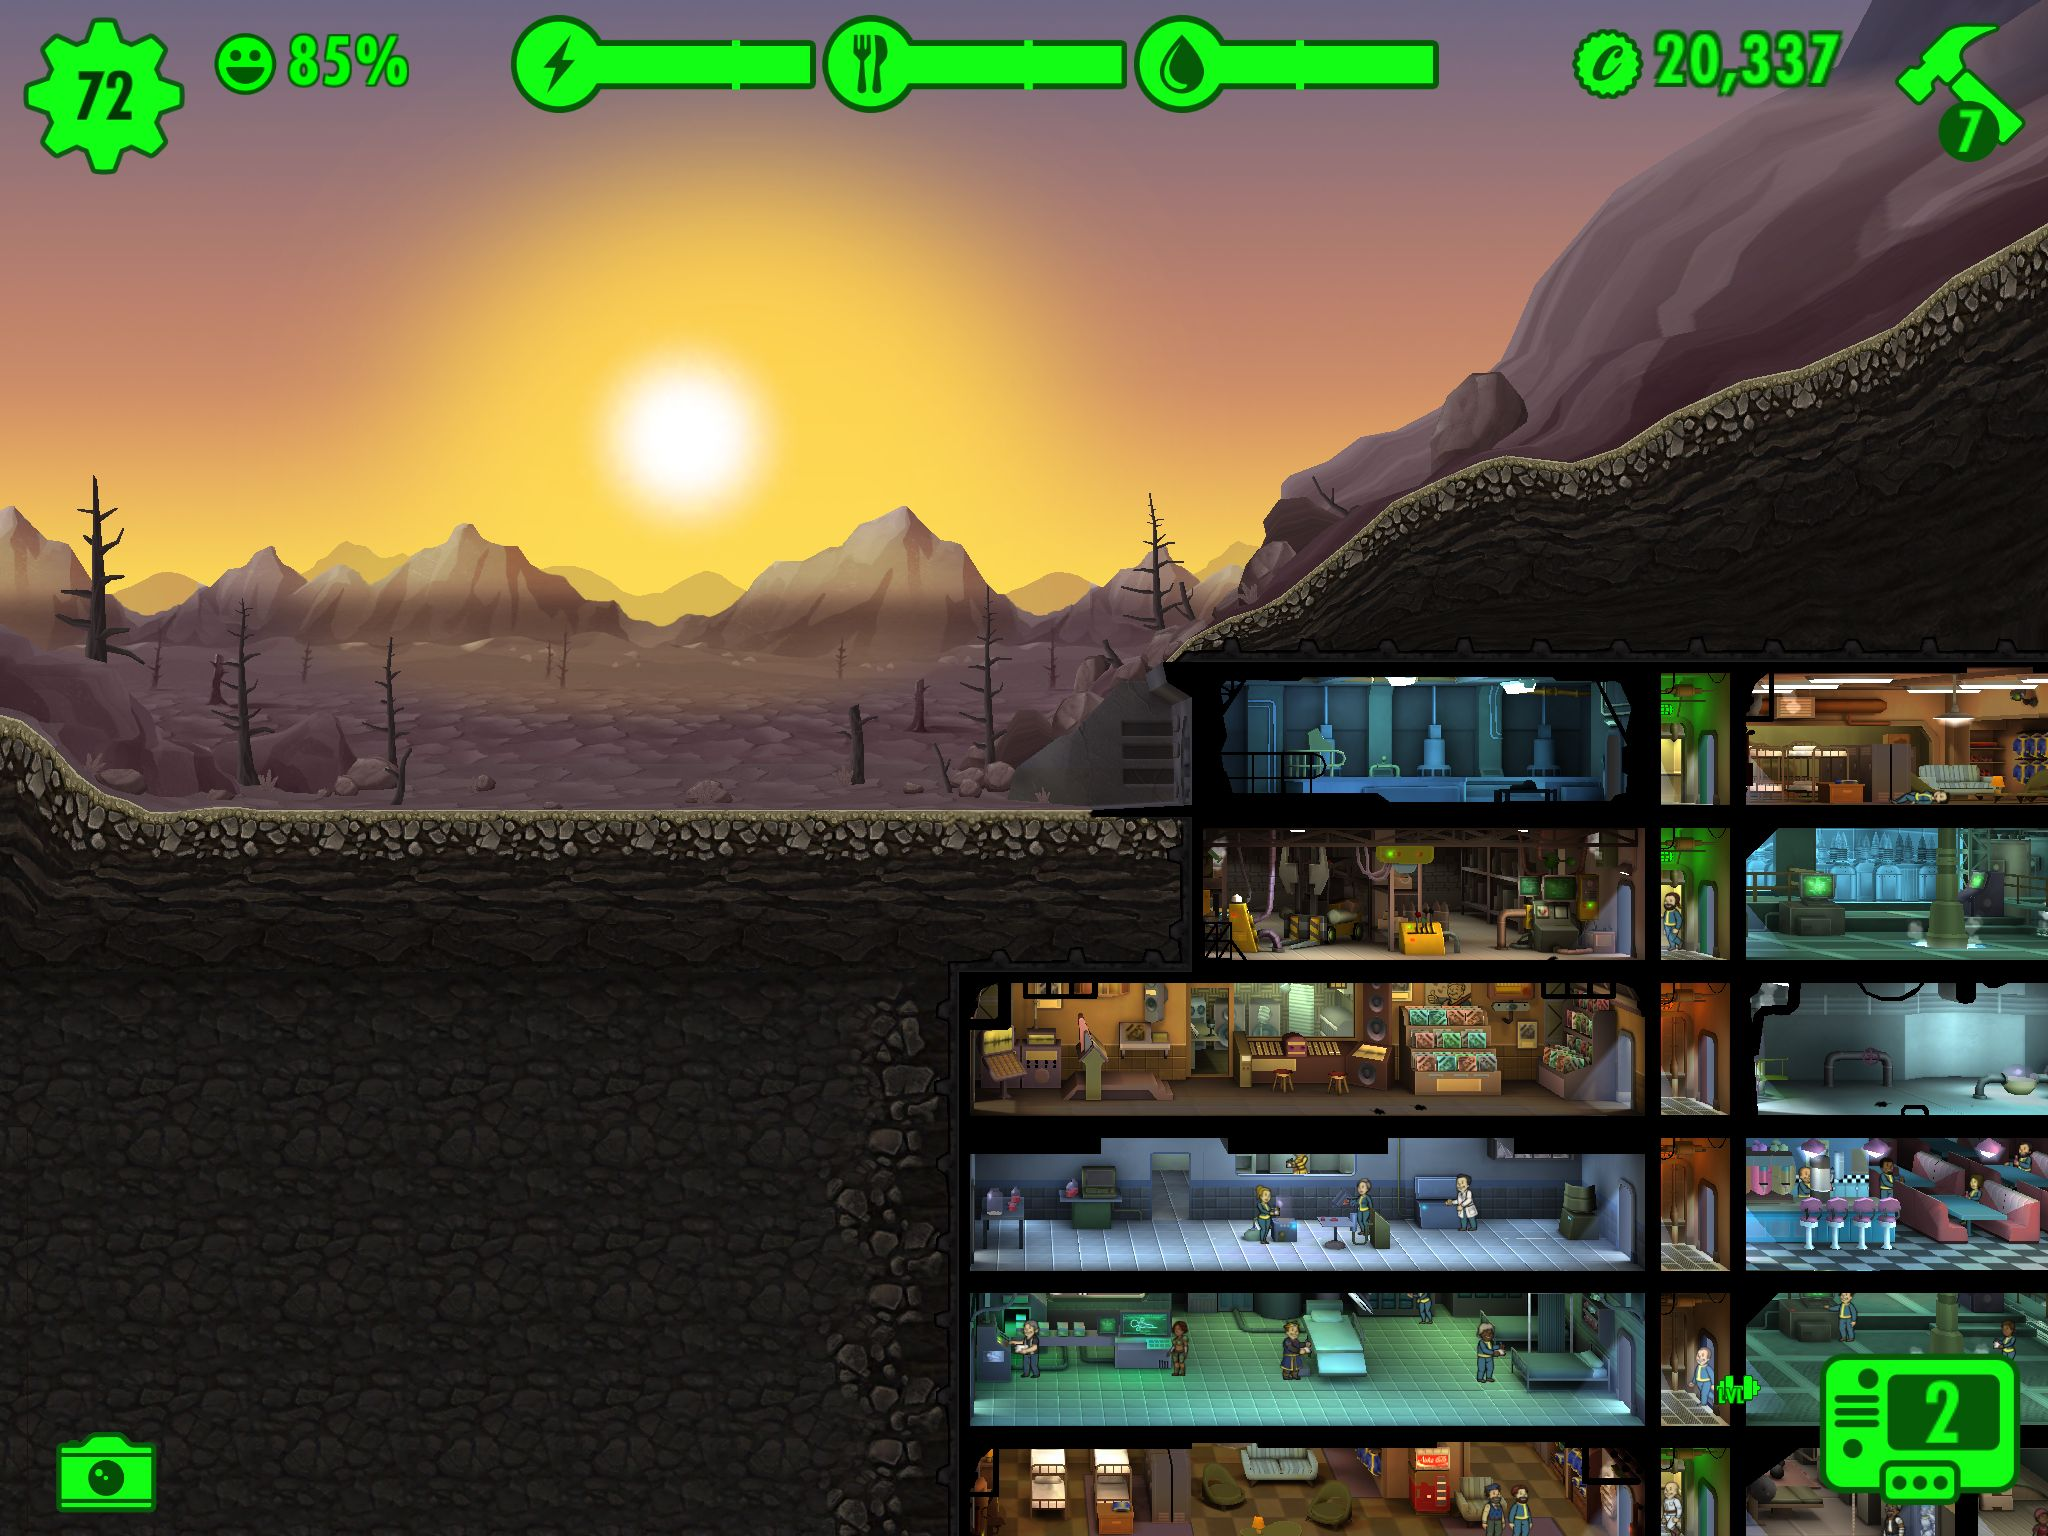 Fallout Shelter Will Consume Your Life, Here's Why You Should Let